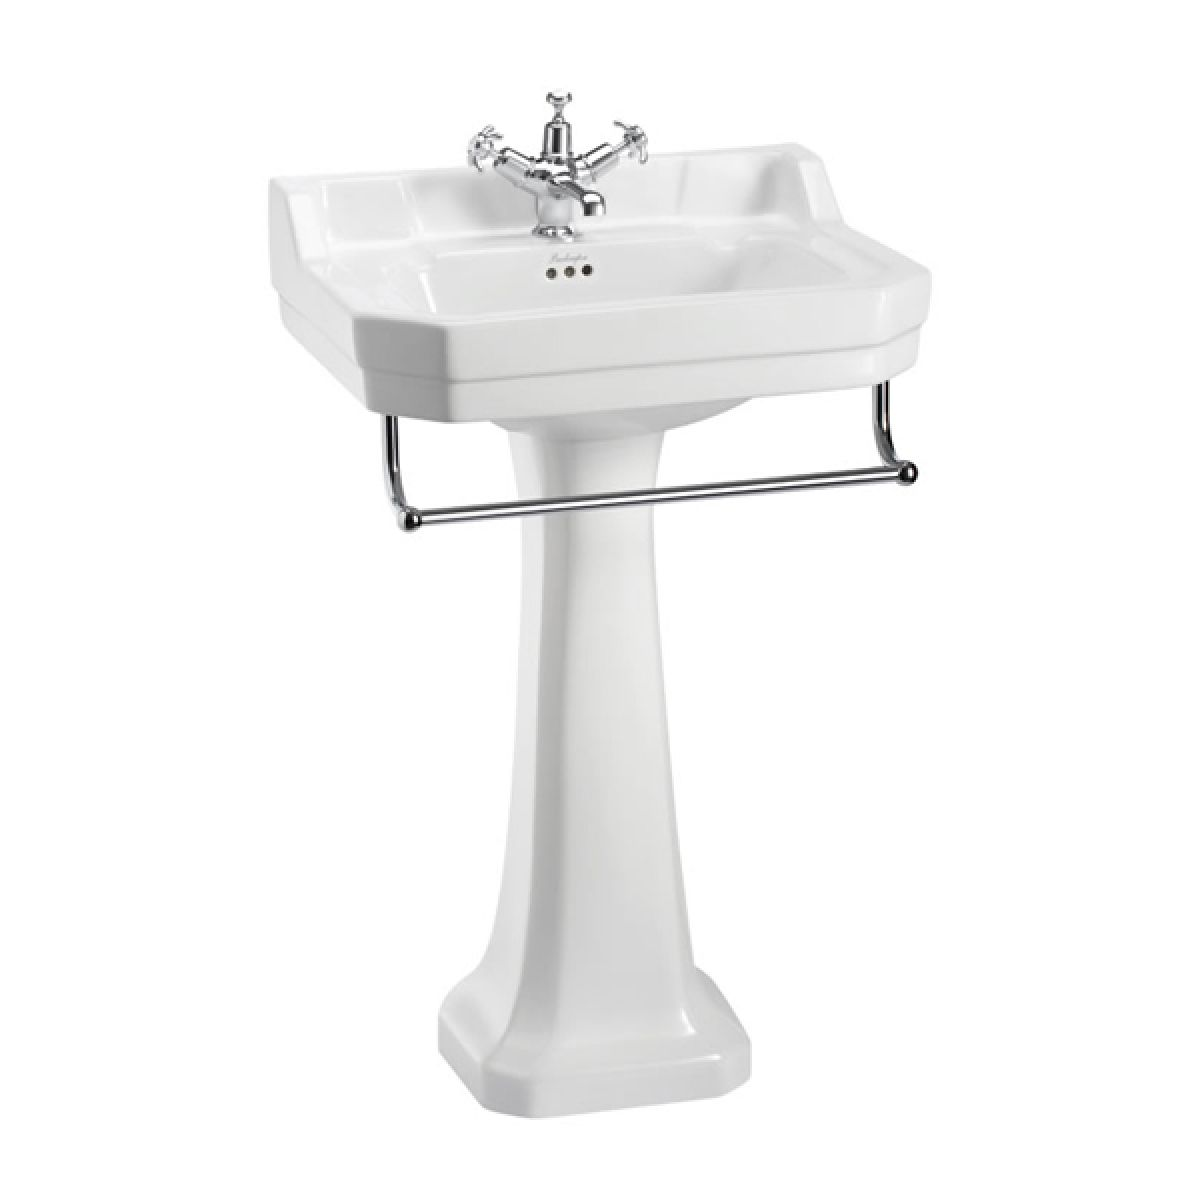 Burlington Edwardian Basin and Full Pedestal with Towel Rail 560mm